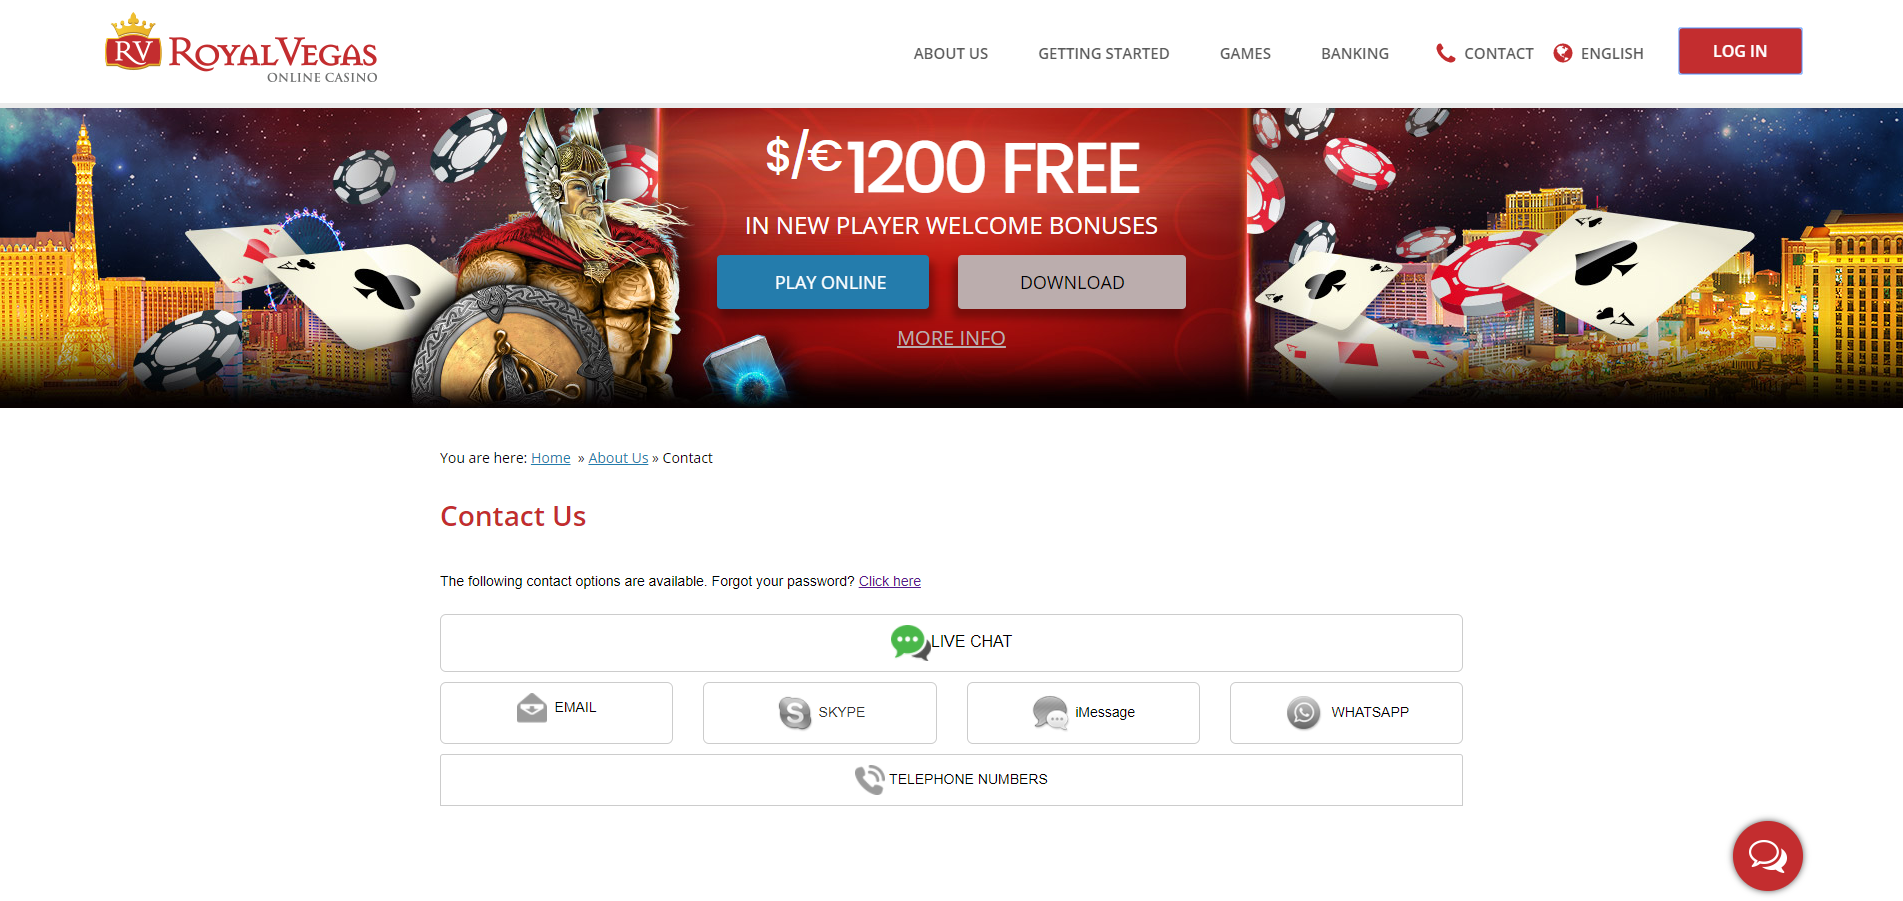 Thrills Casino Online Review With Promotions & Bonuses